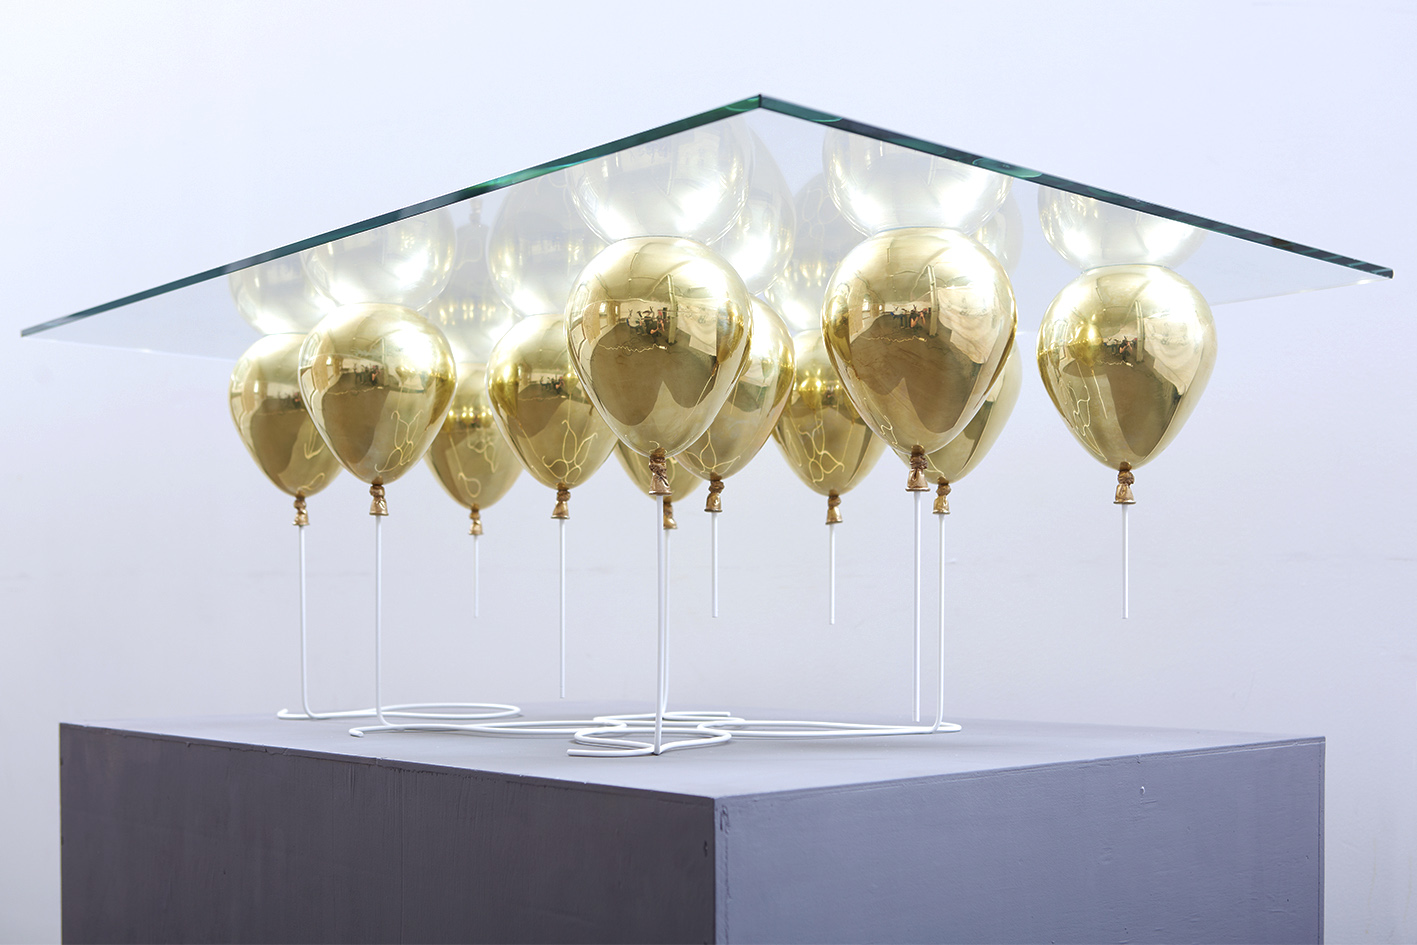 The Up Balloon Coffee Table Duffy London